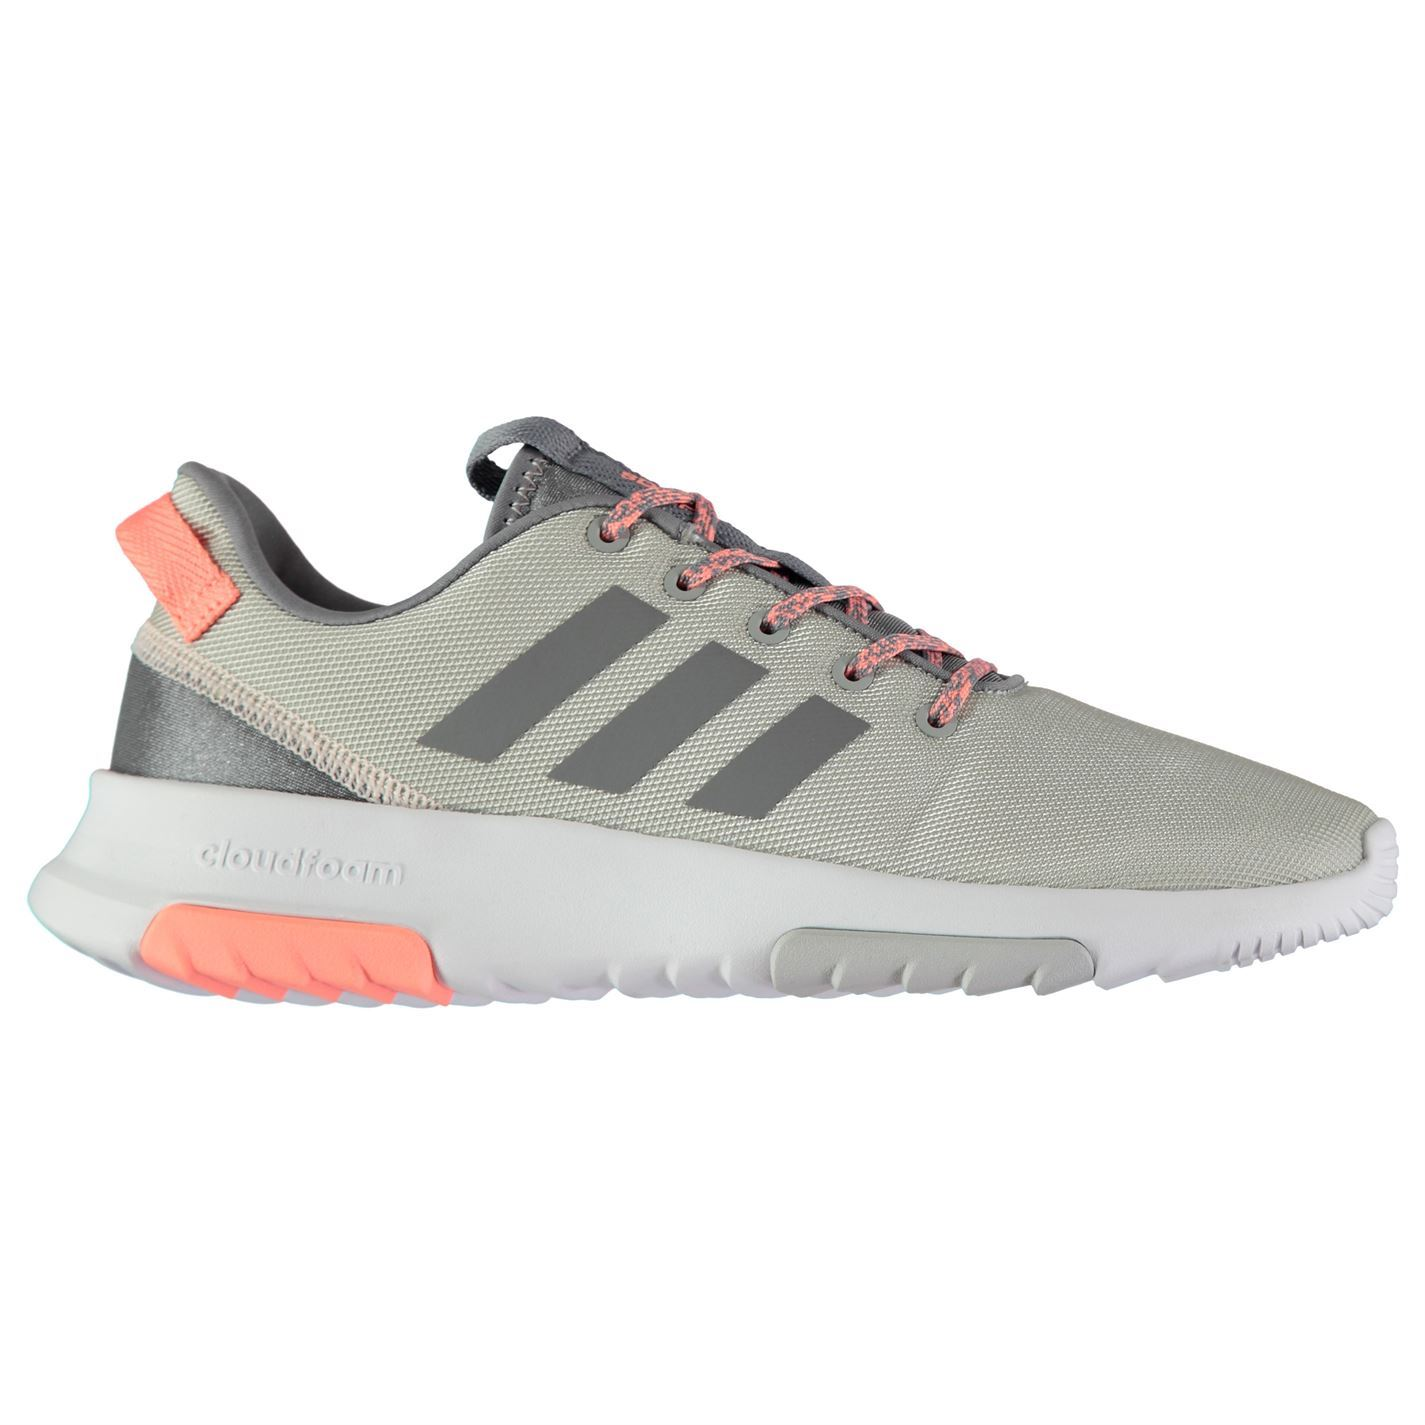 adidas Damenschuhe CF Racer Trainers Runners Lace Up Breathable Lightweight Mesh